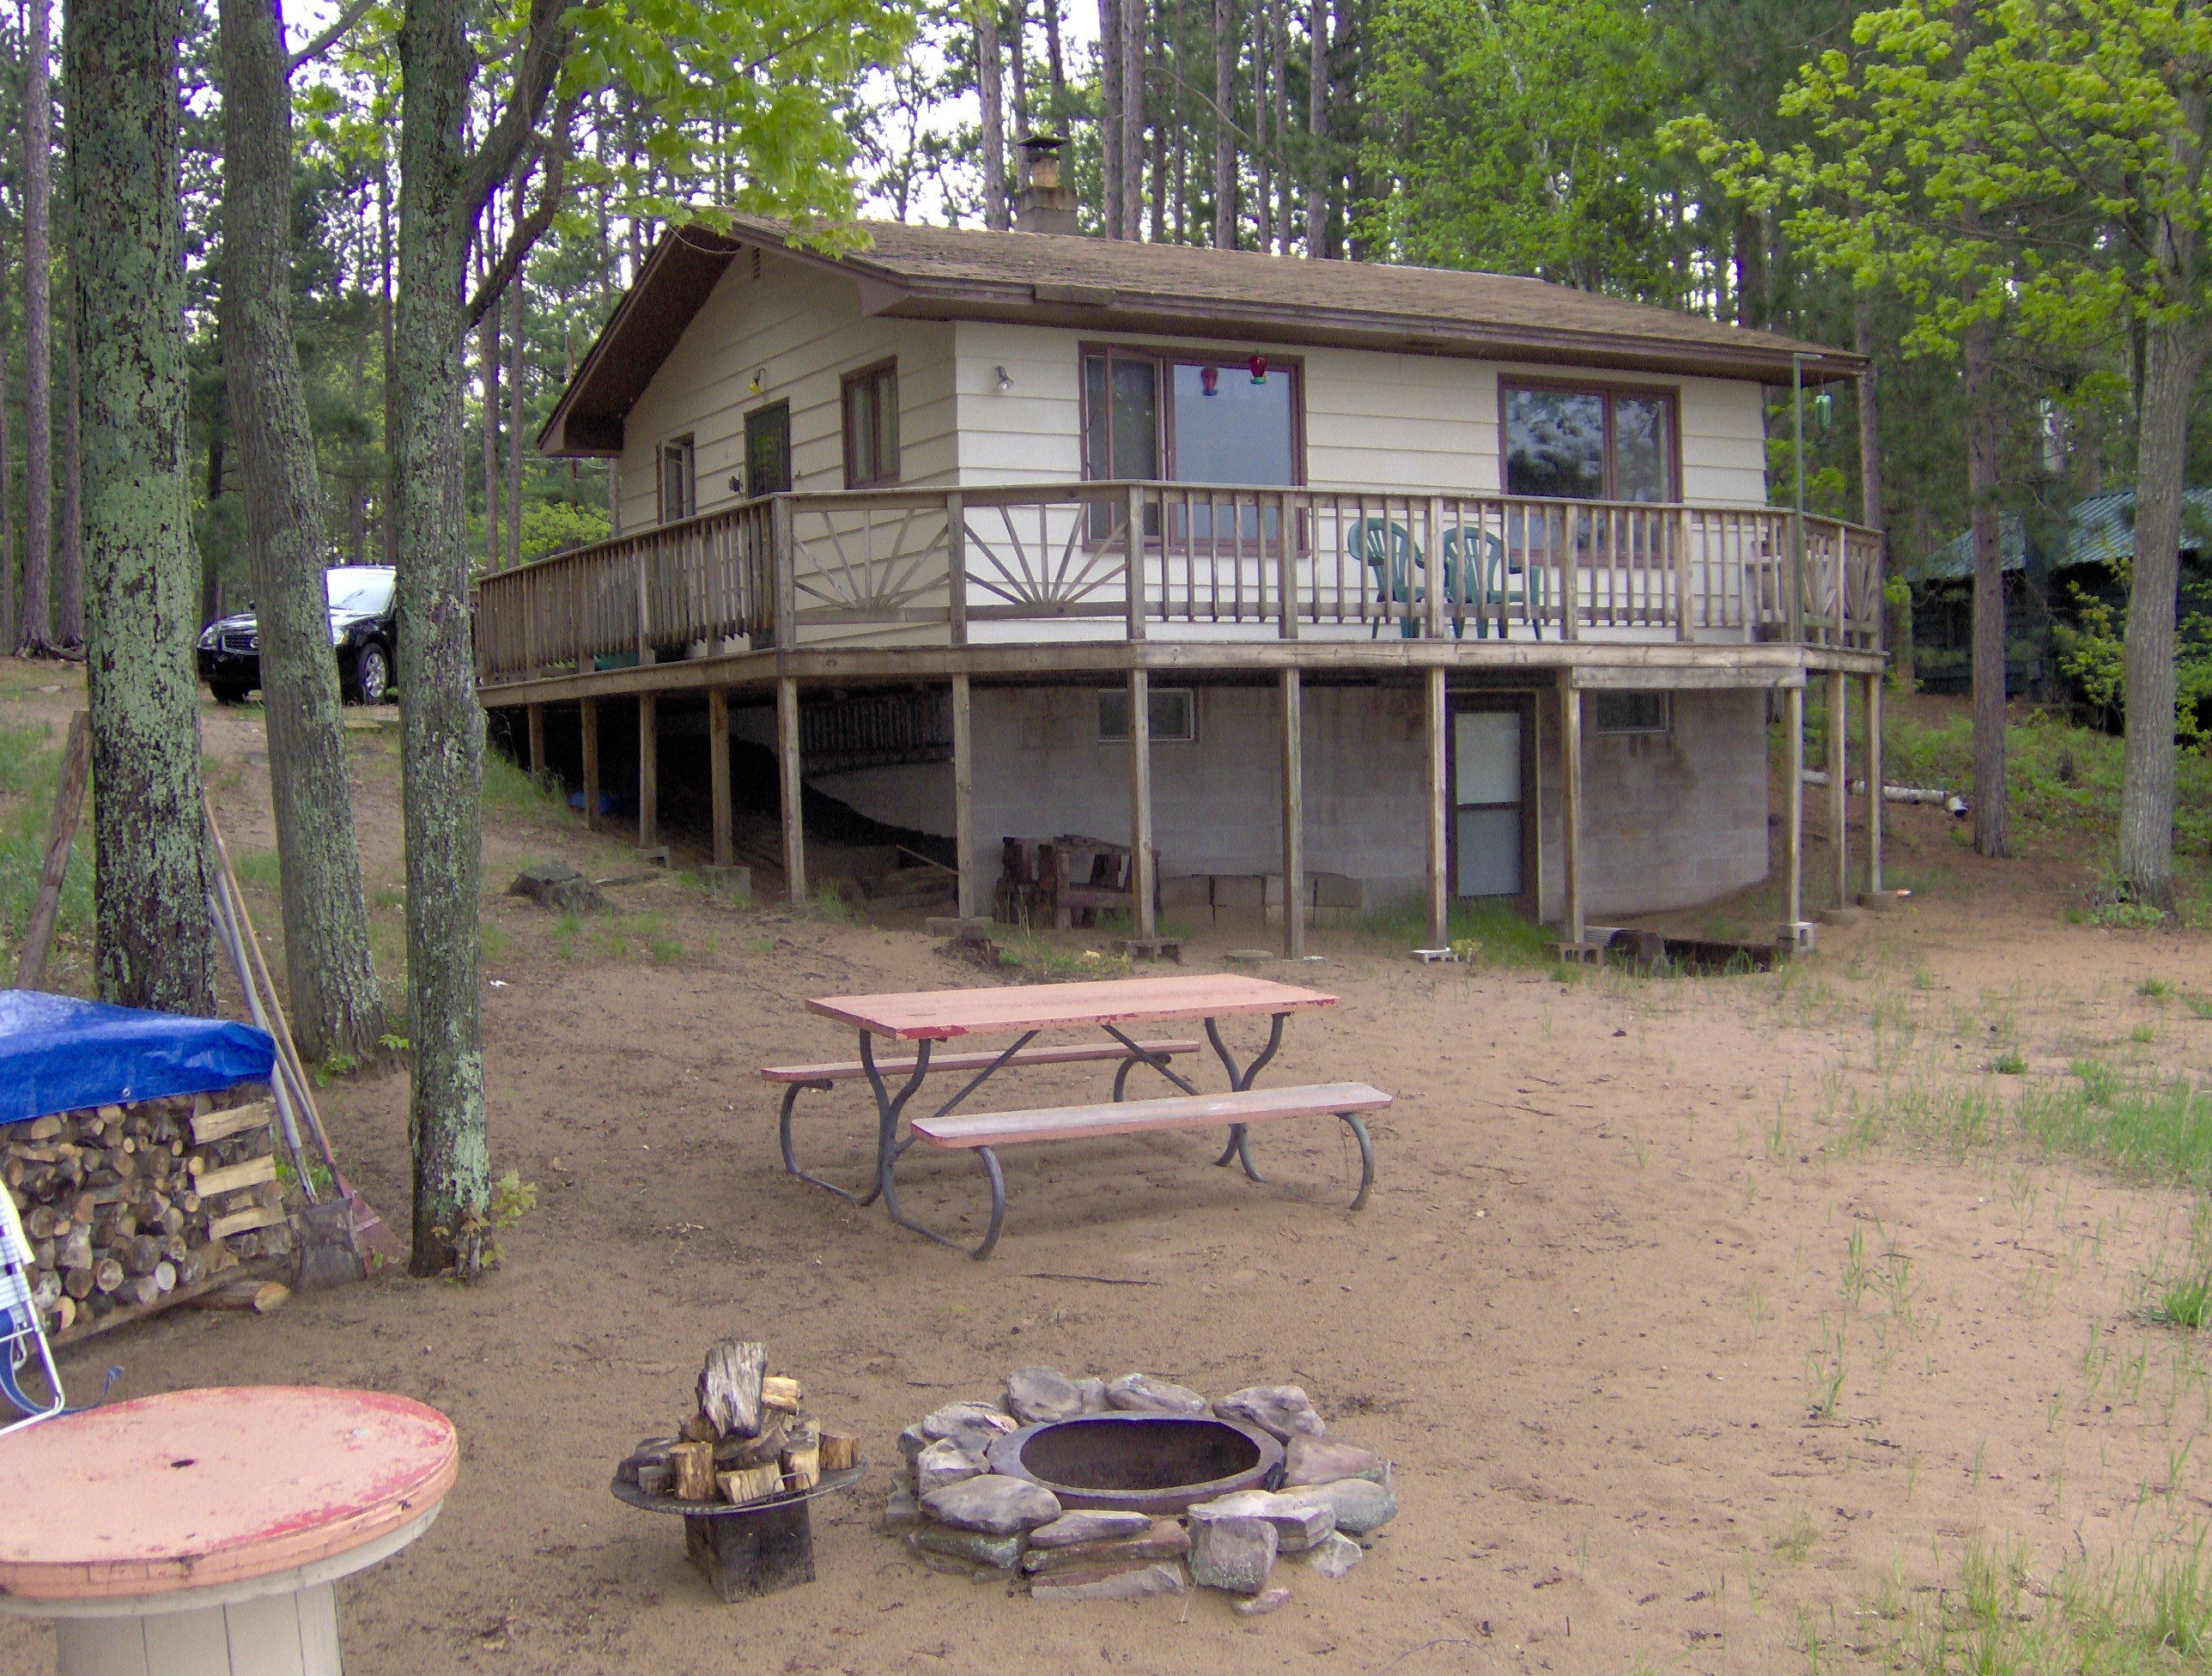 is cabins booking rentals lodging cabin de located lakeshore cul in sac a kingfisher wooded michigan cove